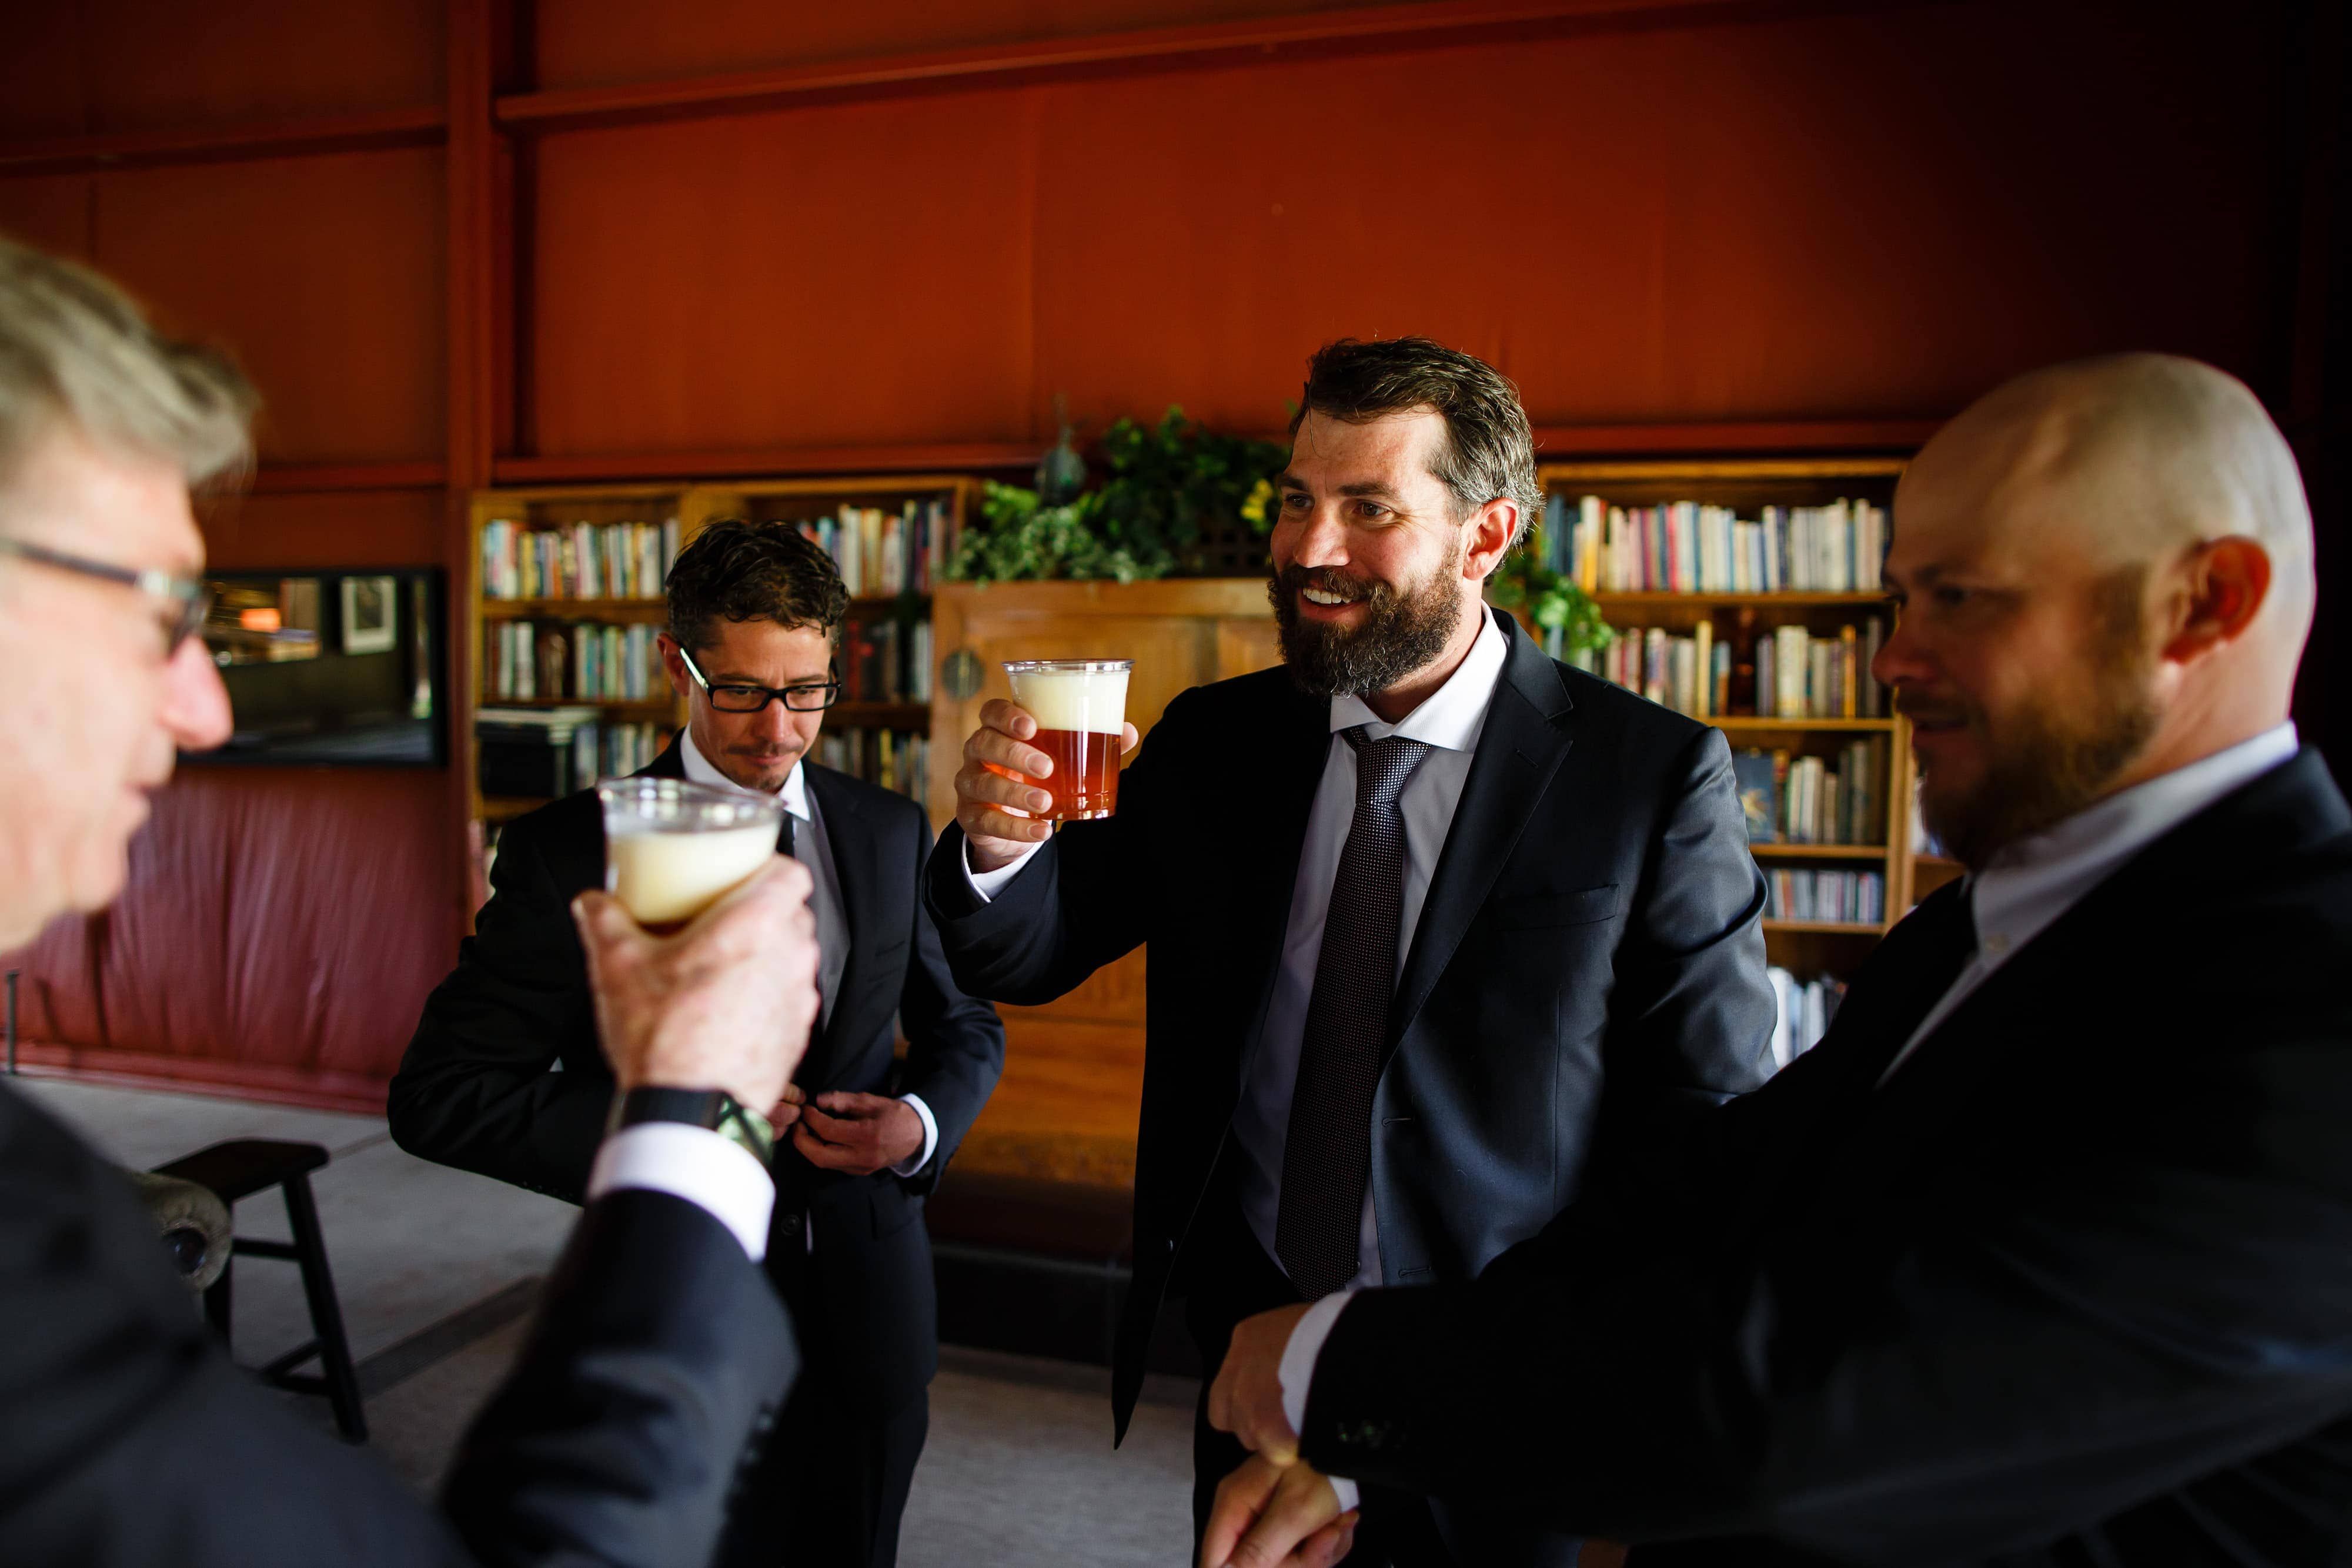 The groom shares a beer with family on his wedding day at Snowmass Cottages